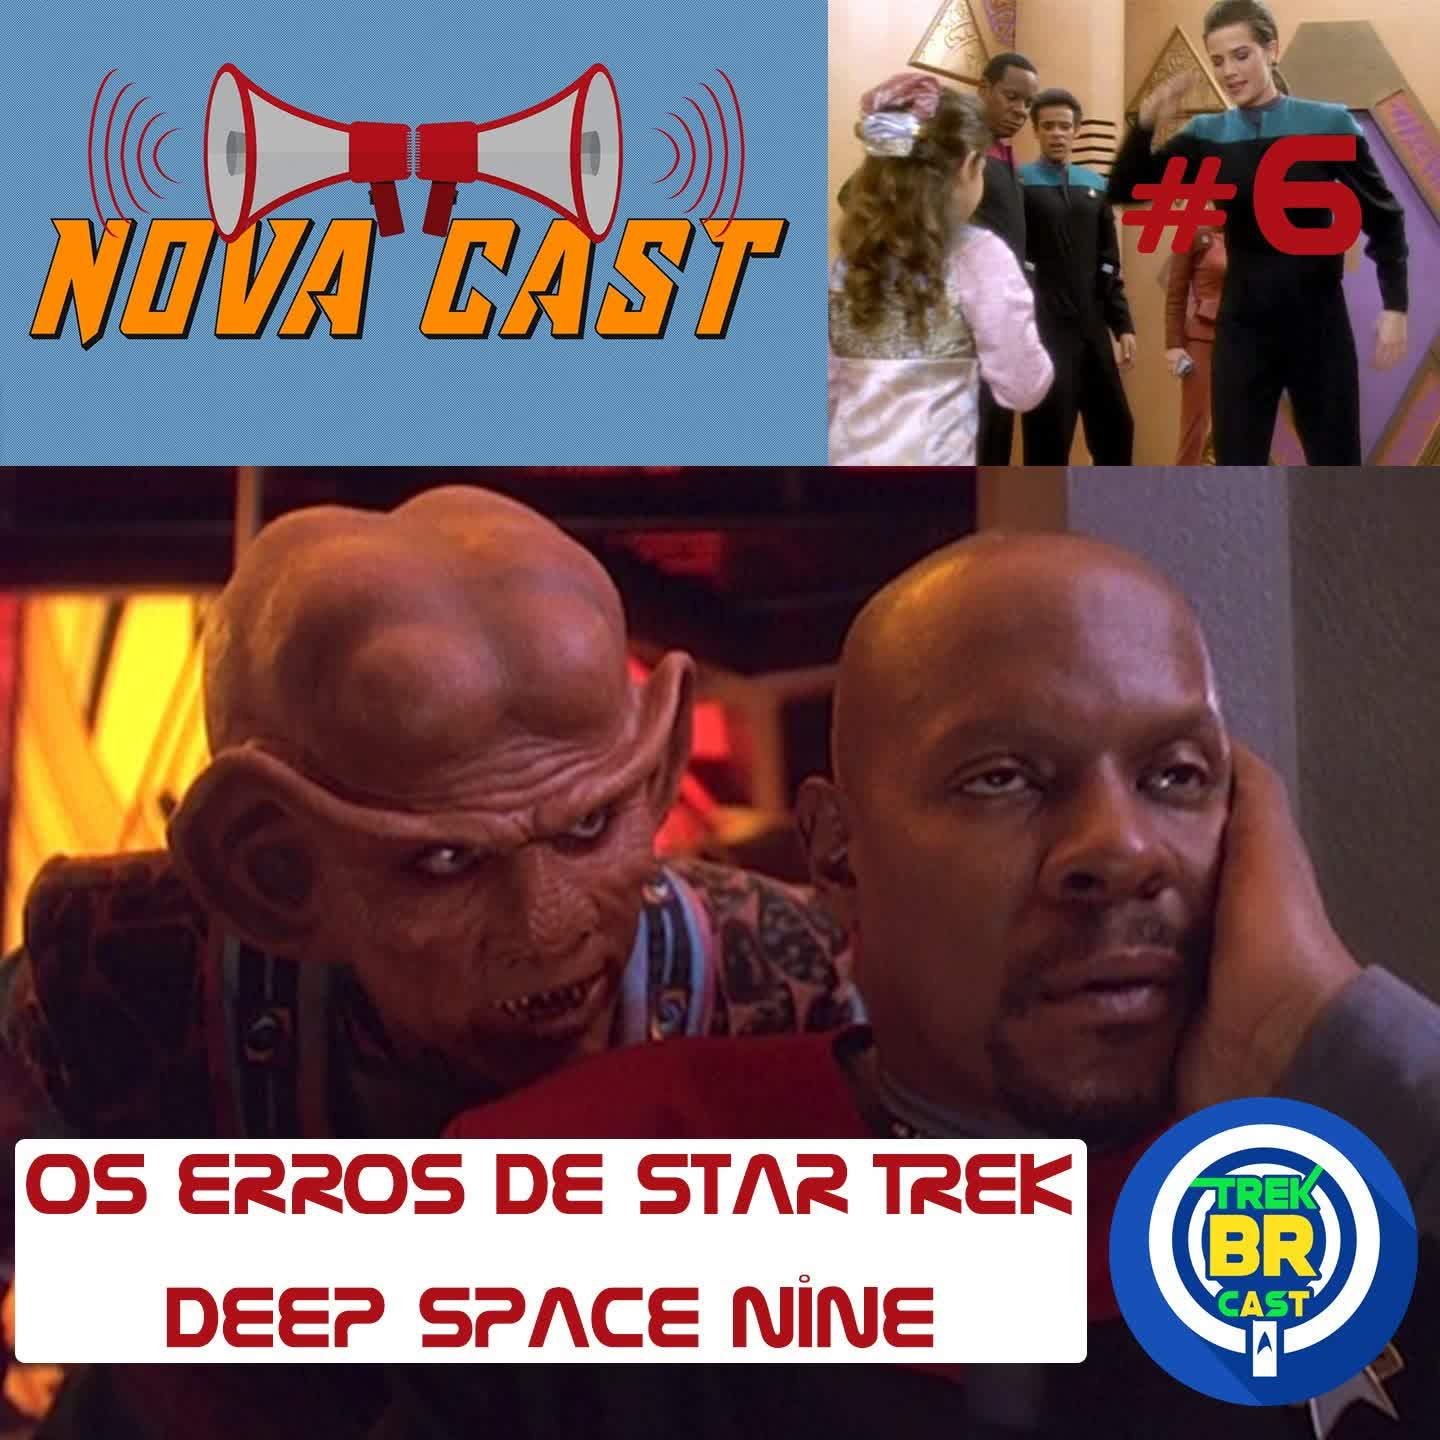 Os Erros de Star TreK: DS9 - NovaCast 6